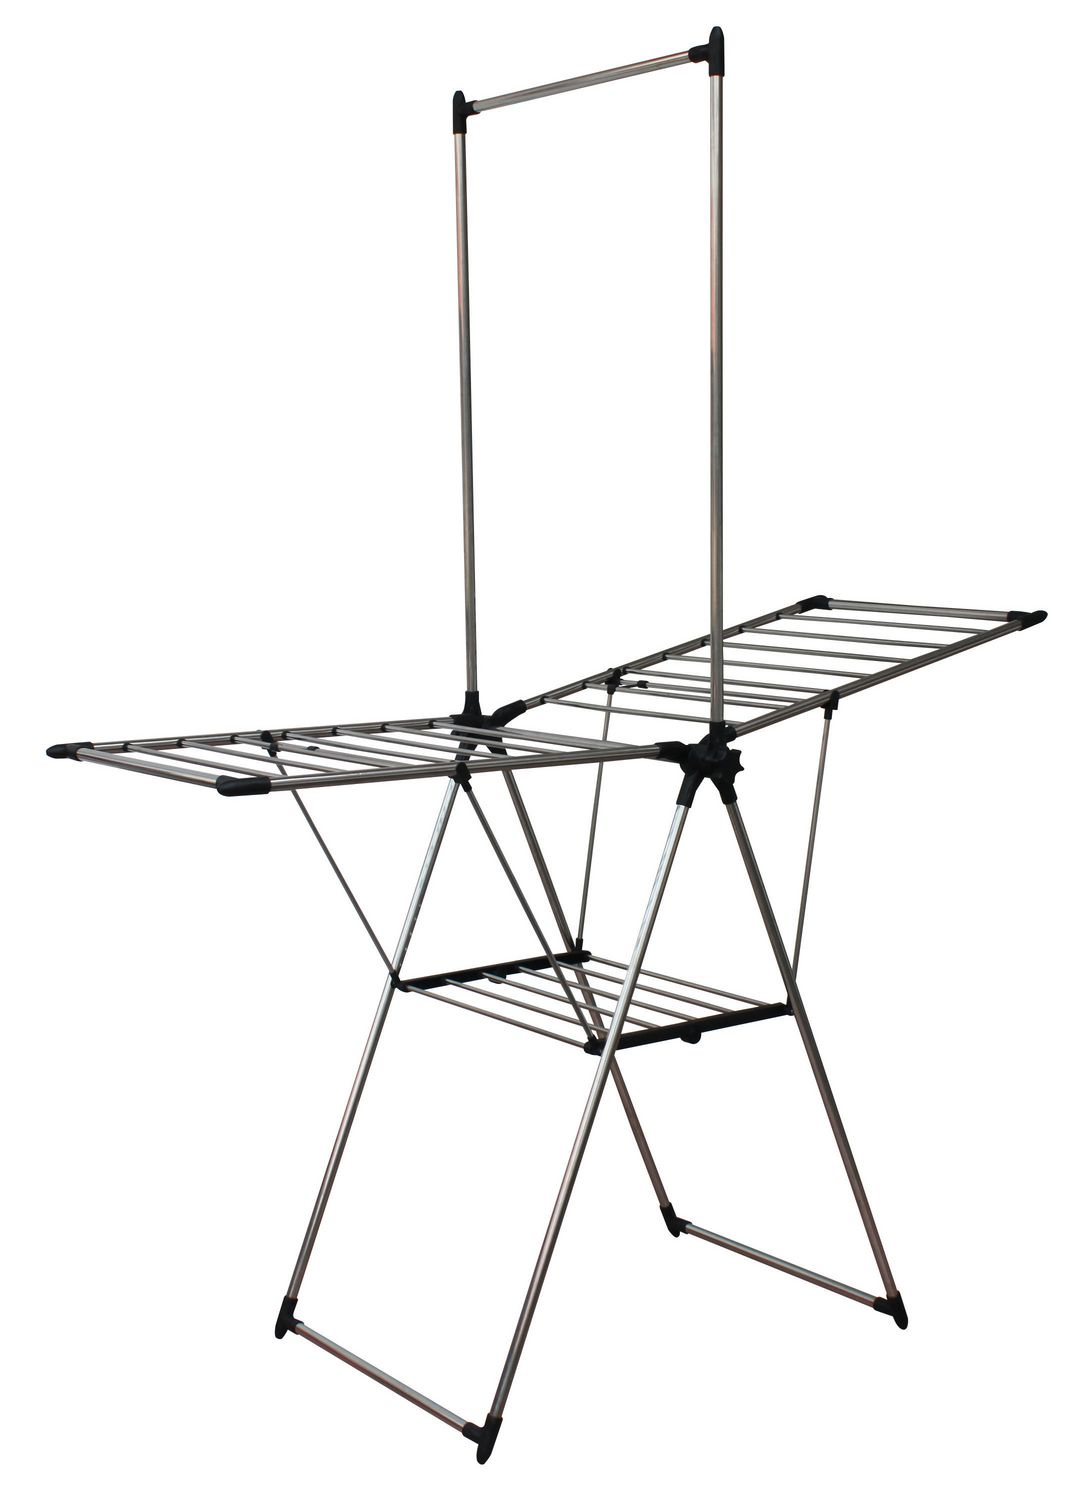 Mainstays Stainless Steel Drying Rack With Hanging Bar